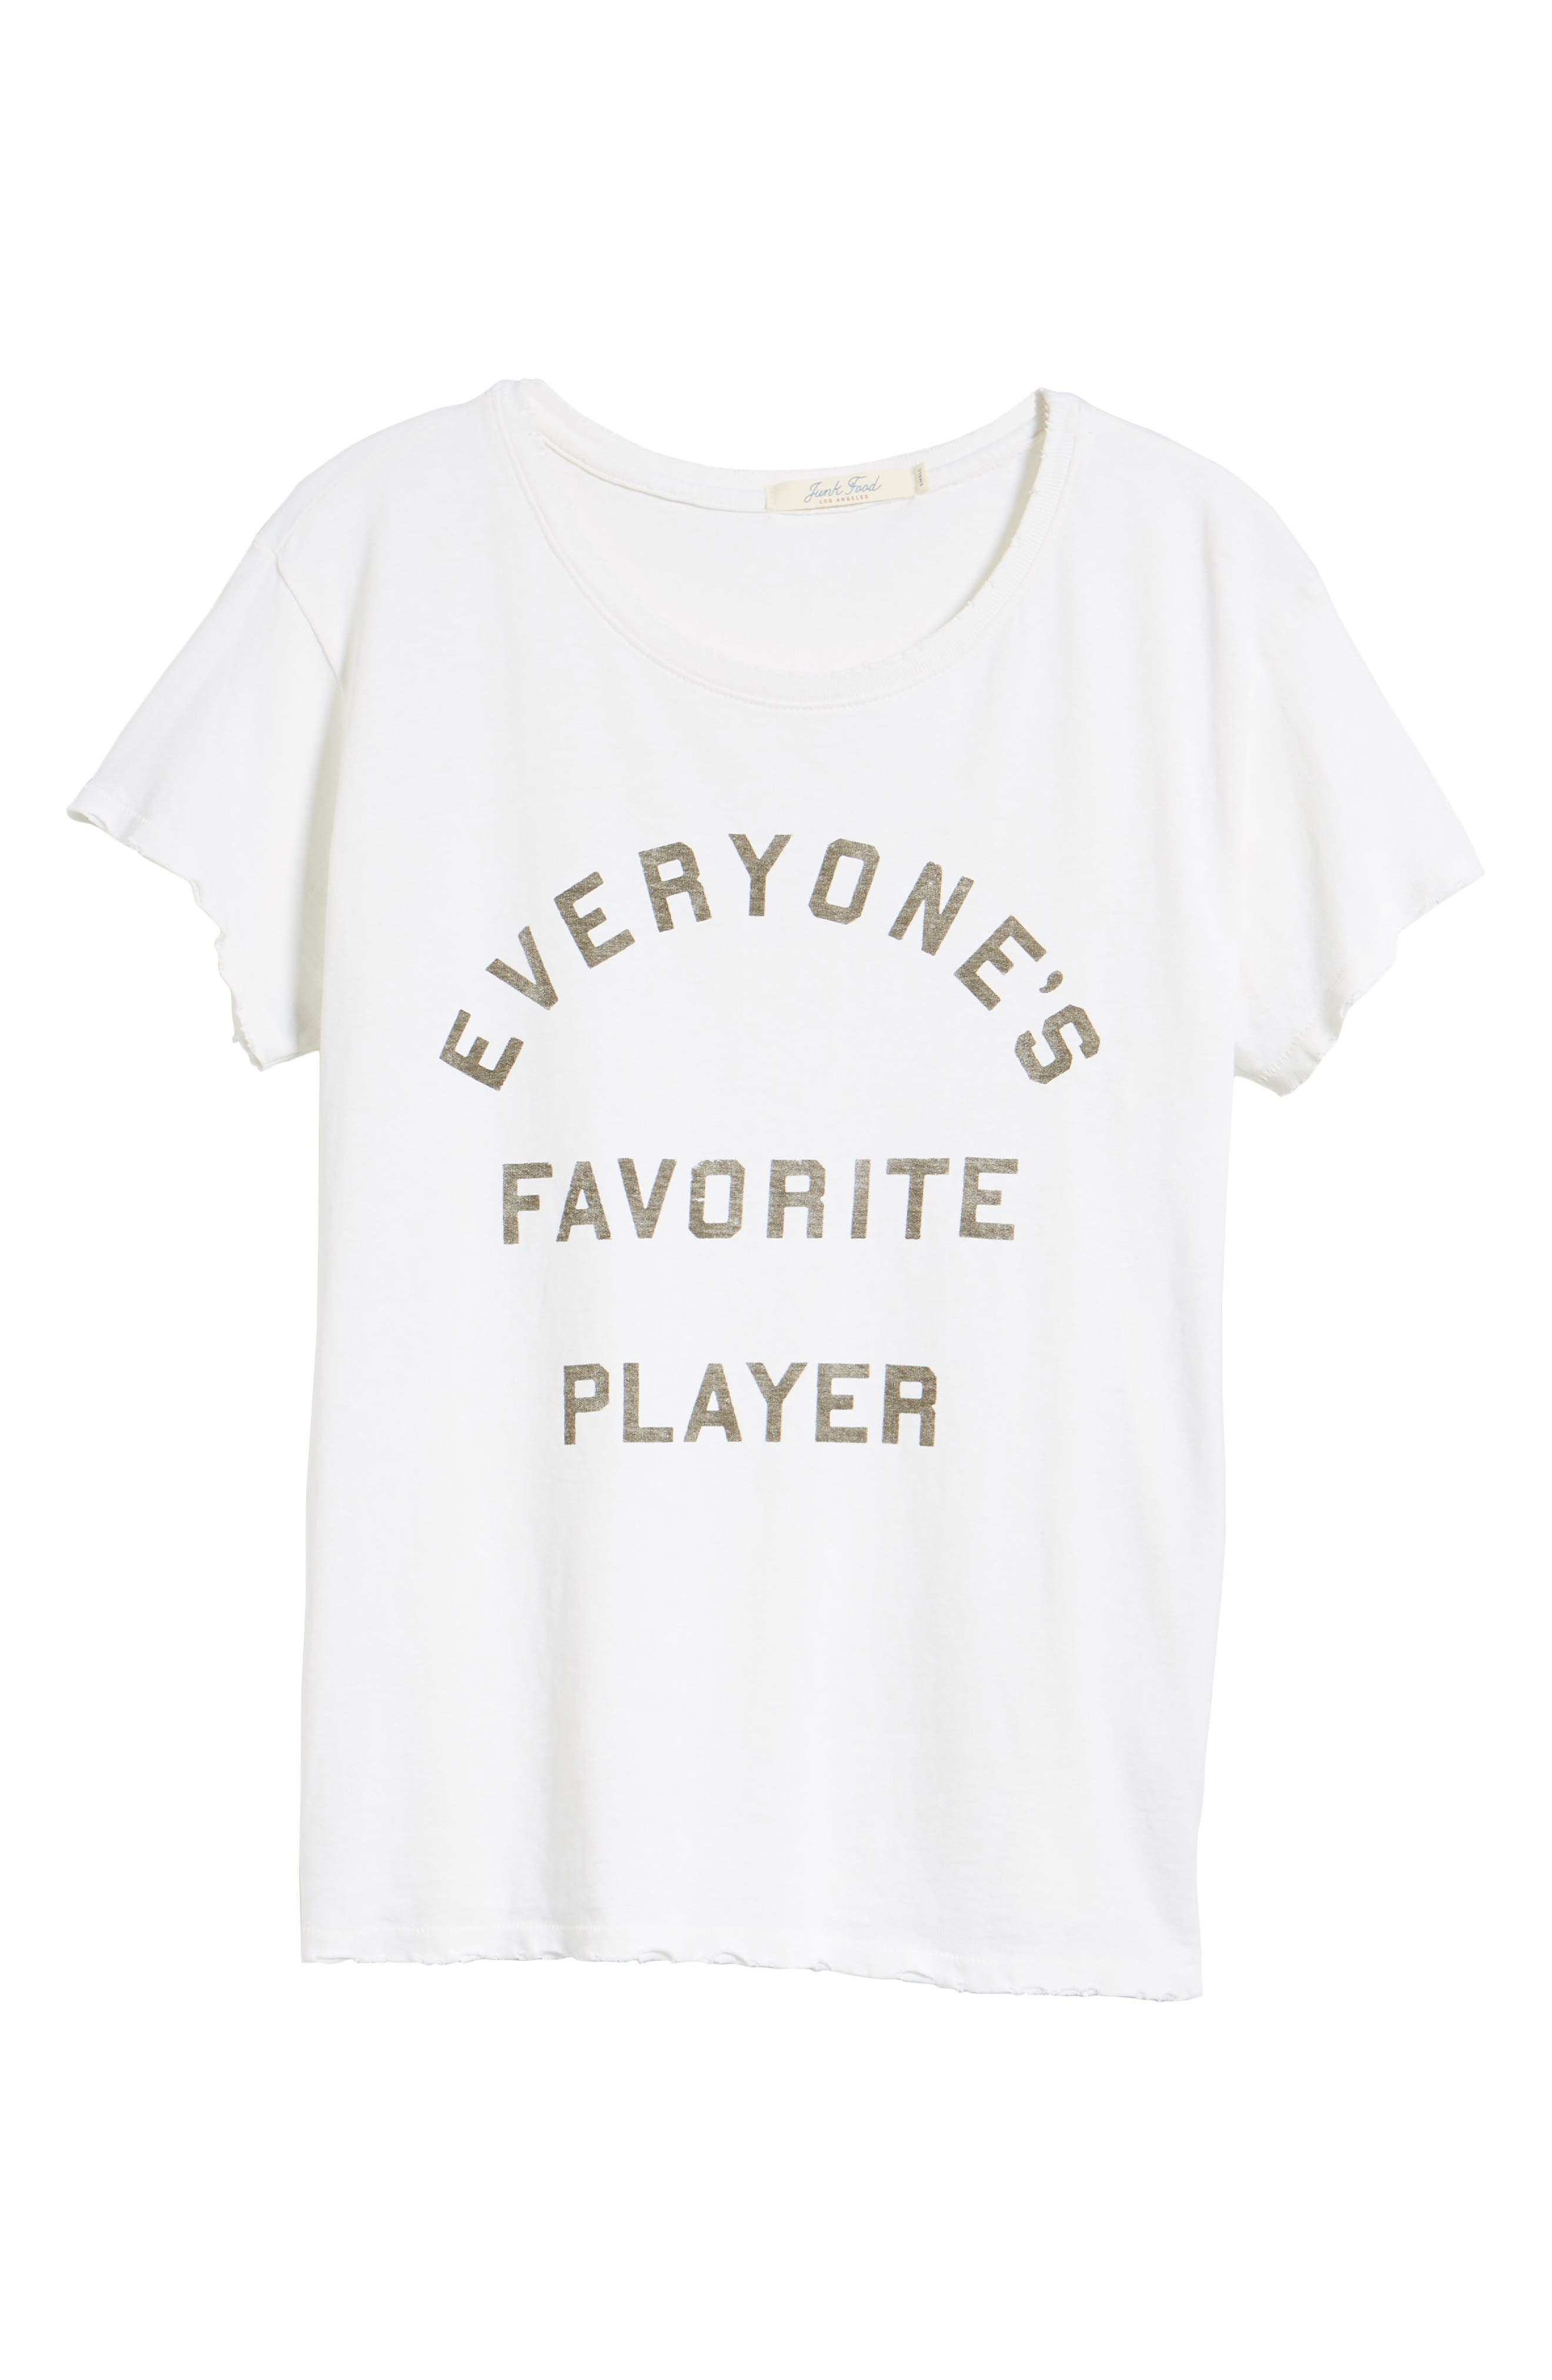 Everyone's Favorite Player Tee,                             Alternate thumbnail 7, color,                             Vintage White